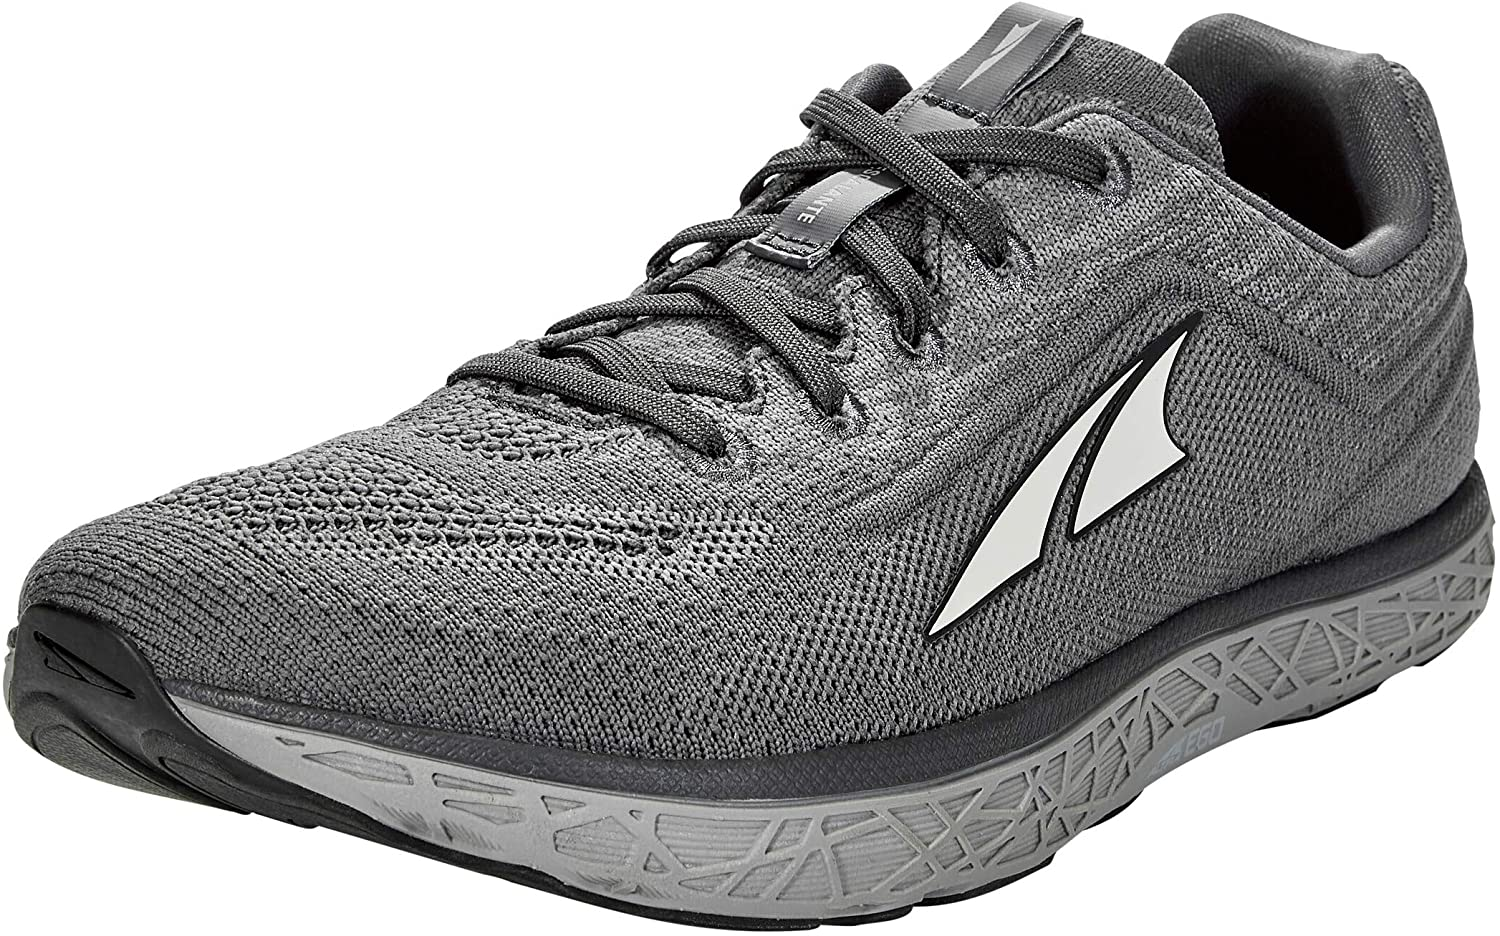 Altra Men's Escalante 2.5 Road Running Shoe in Gray from the side